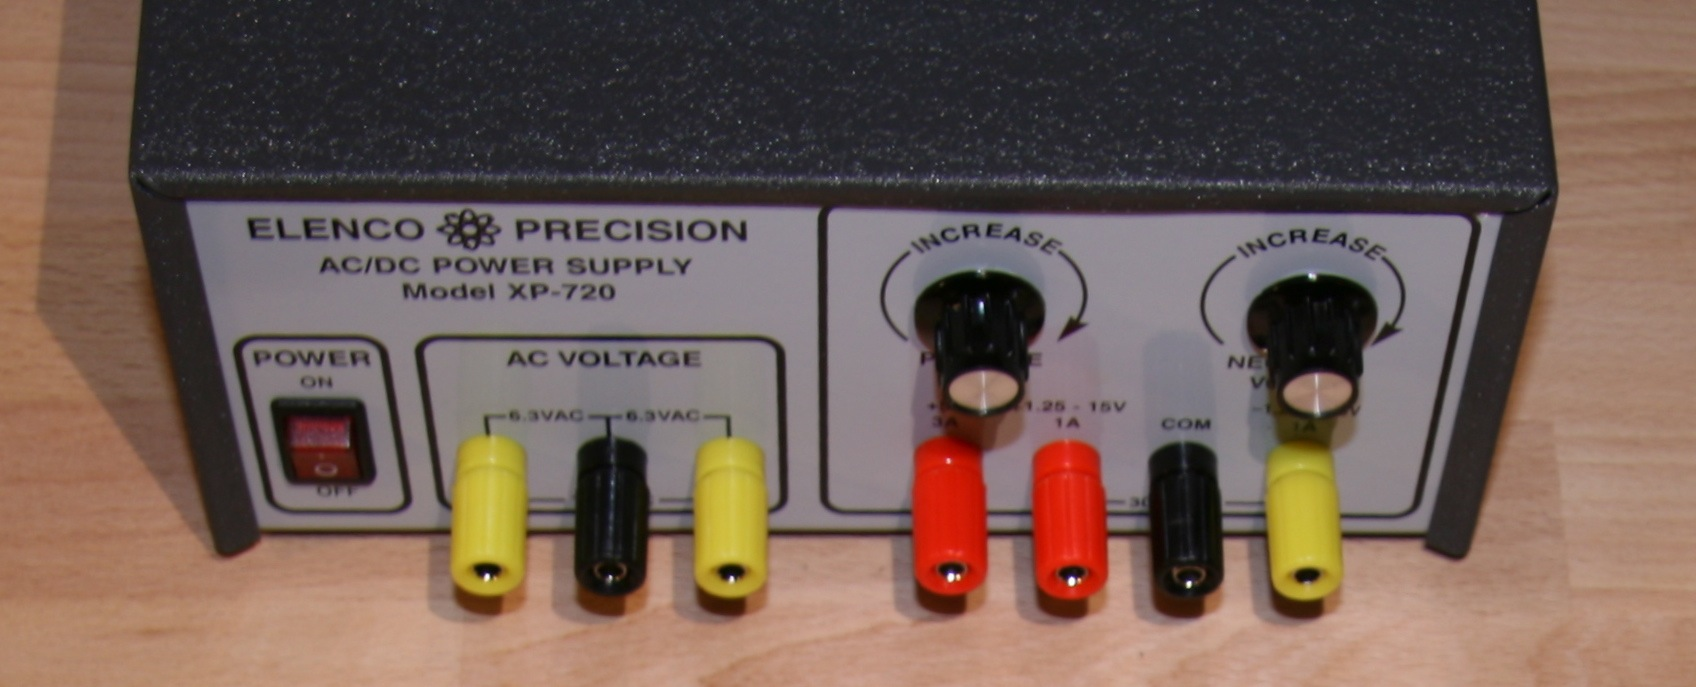 Building The Elenco Xp 720k Variable Dc Voltage Power Supply Kit Using 7805 For